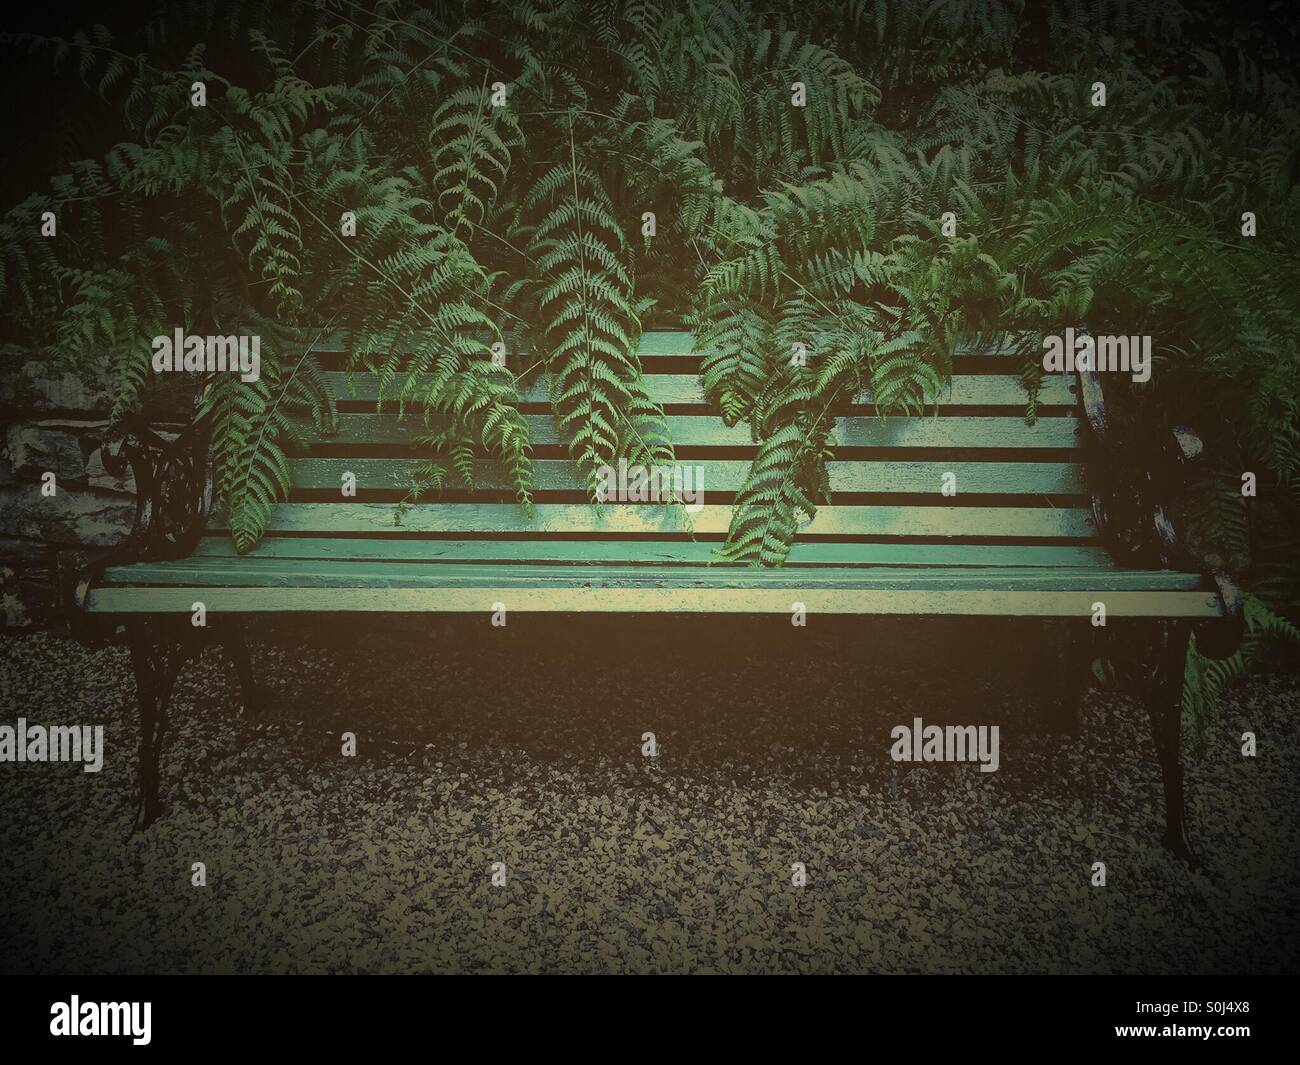 Green bench hidden in the ferns - Stock Image